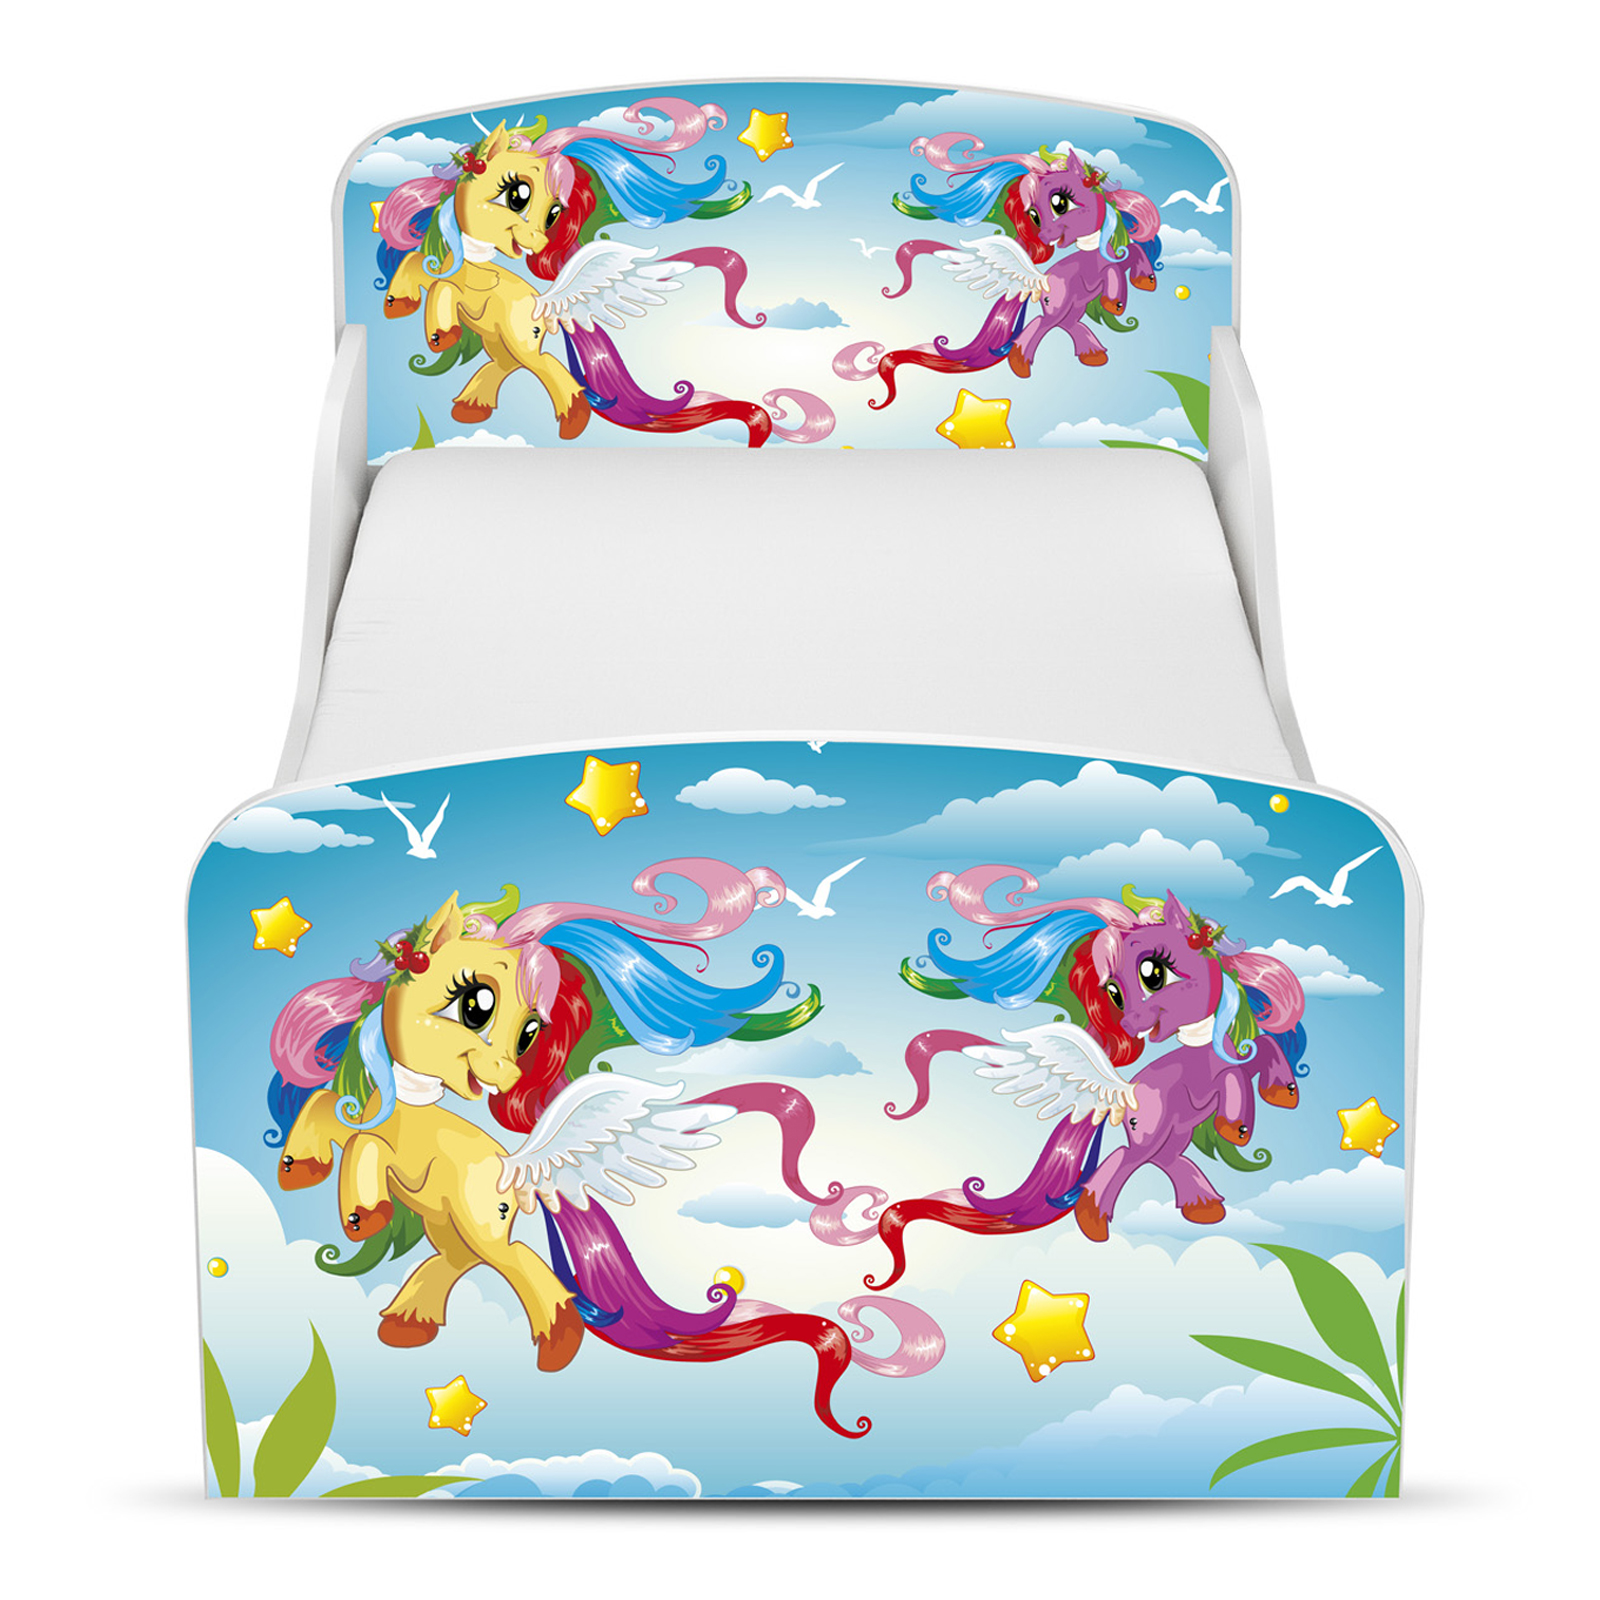 Beter Bed Peuterbed.Peuterbed Peuterbedden Junior Bed